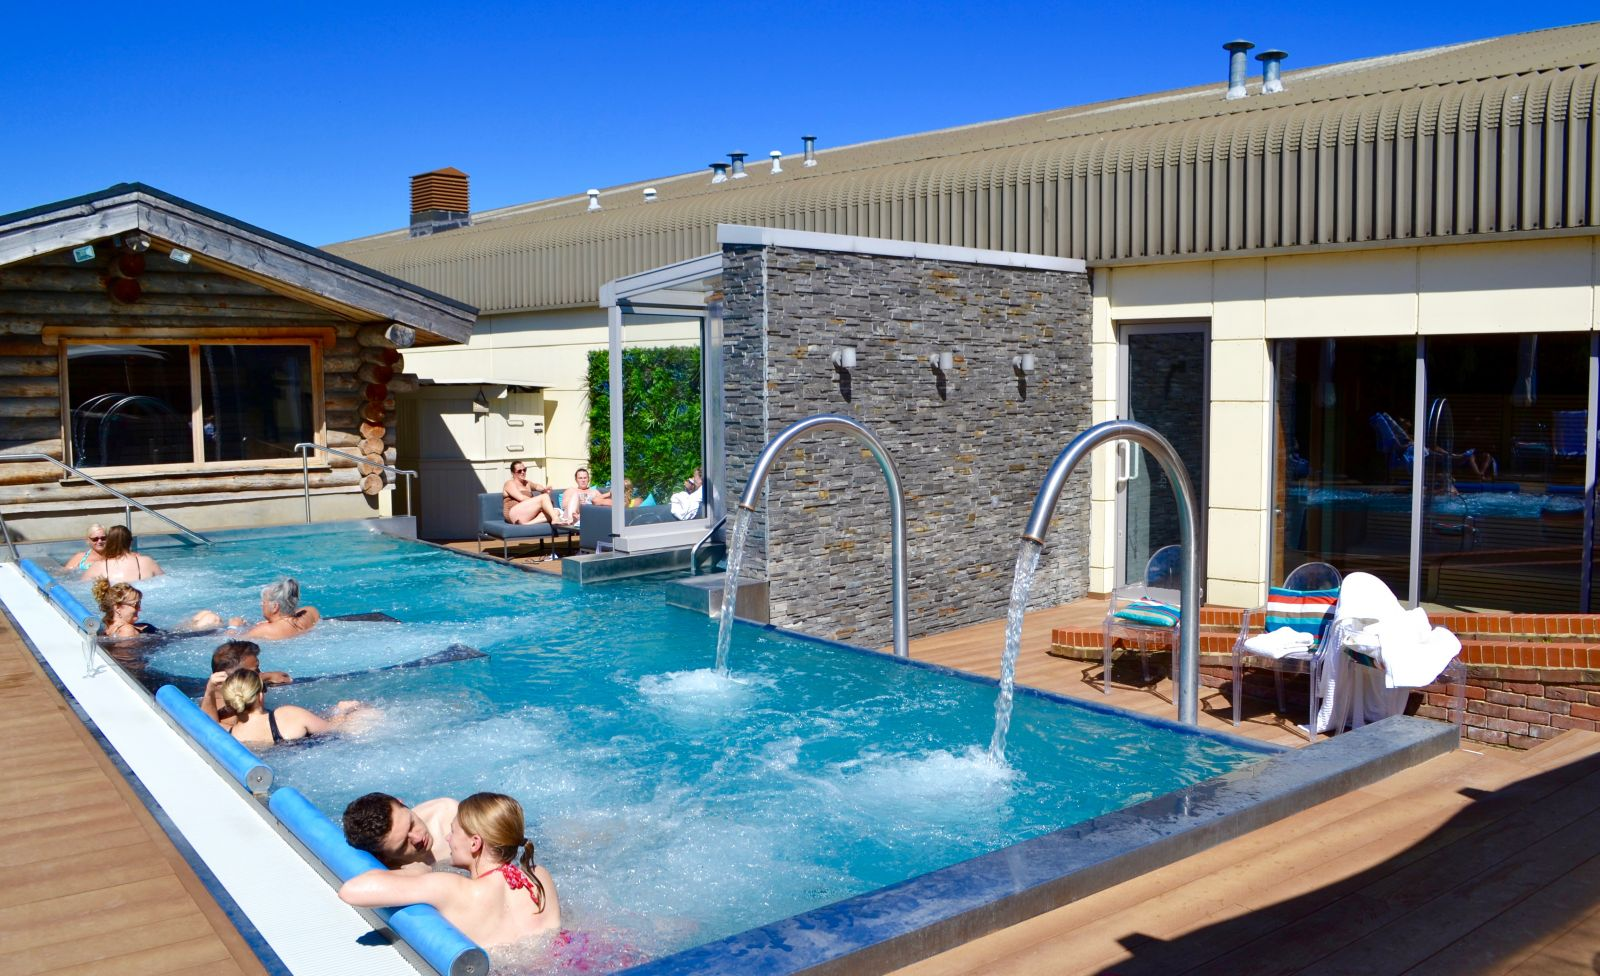 Complete Bliss at the Y-Spa at Wyboston Lakes!*